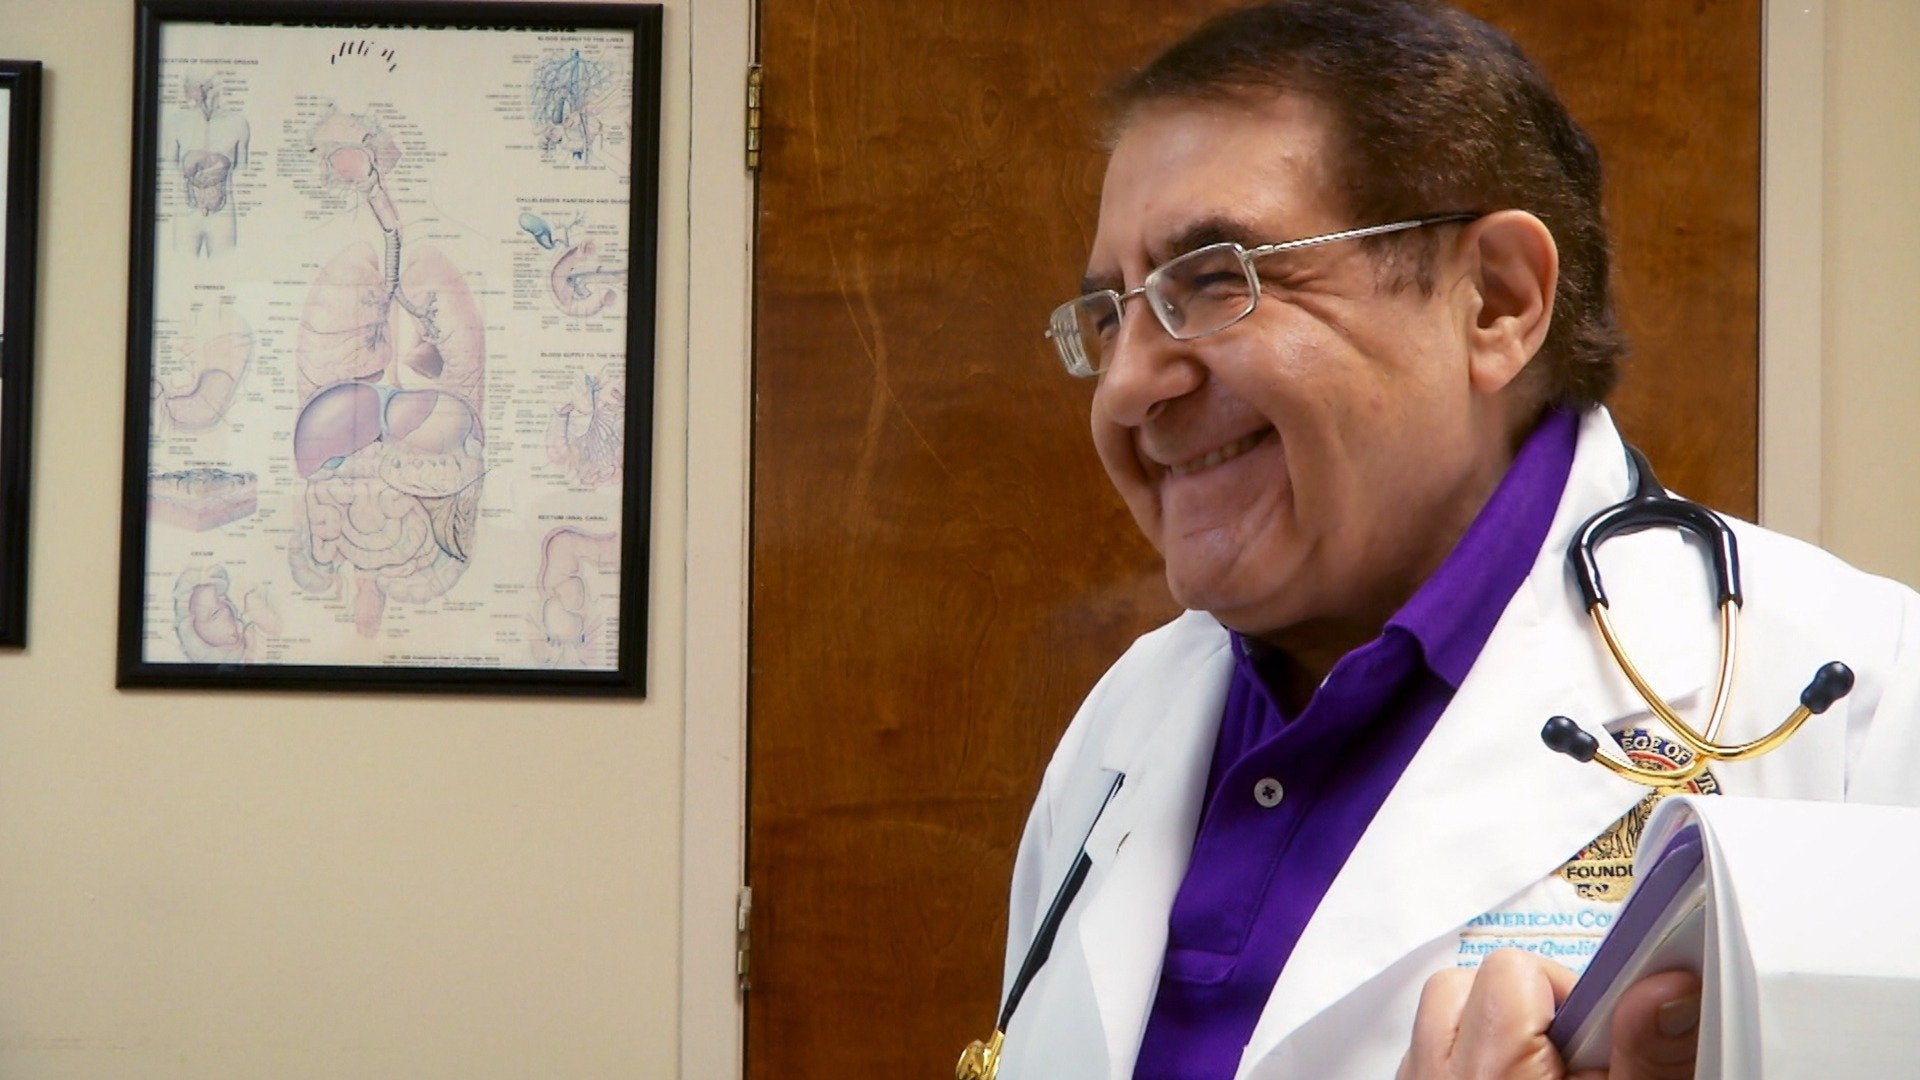 My 600-lb Life: Dr. Now's Most Memorable Cases